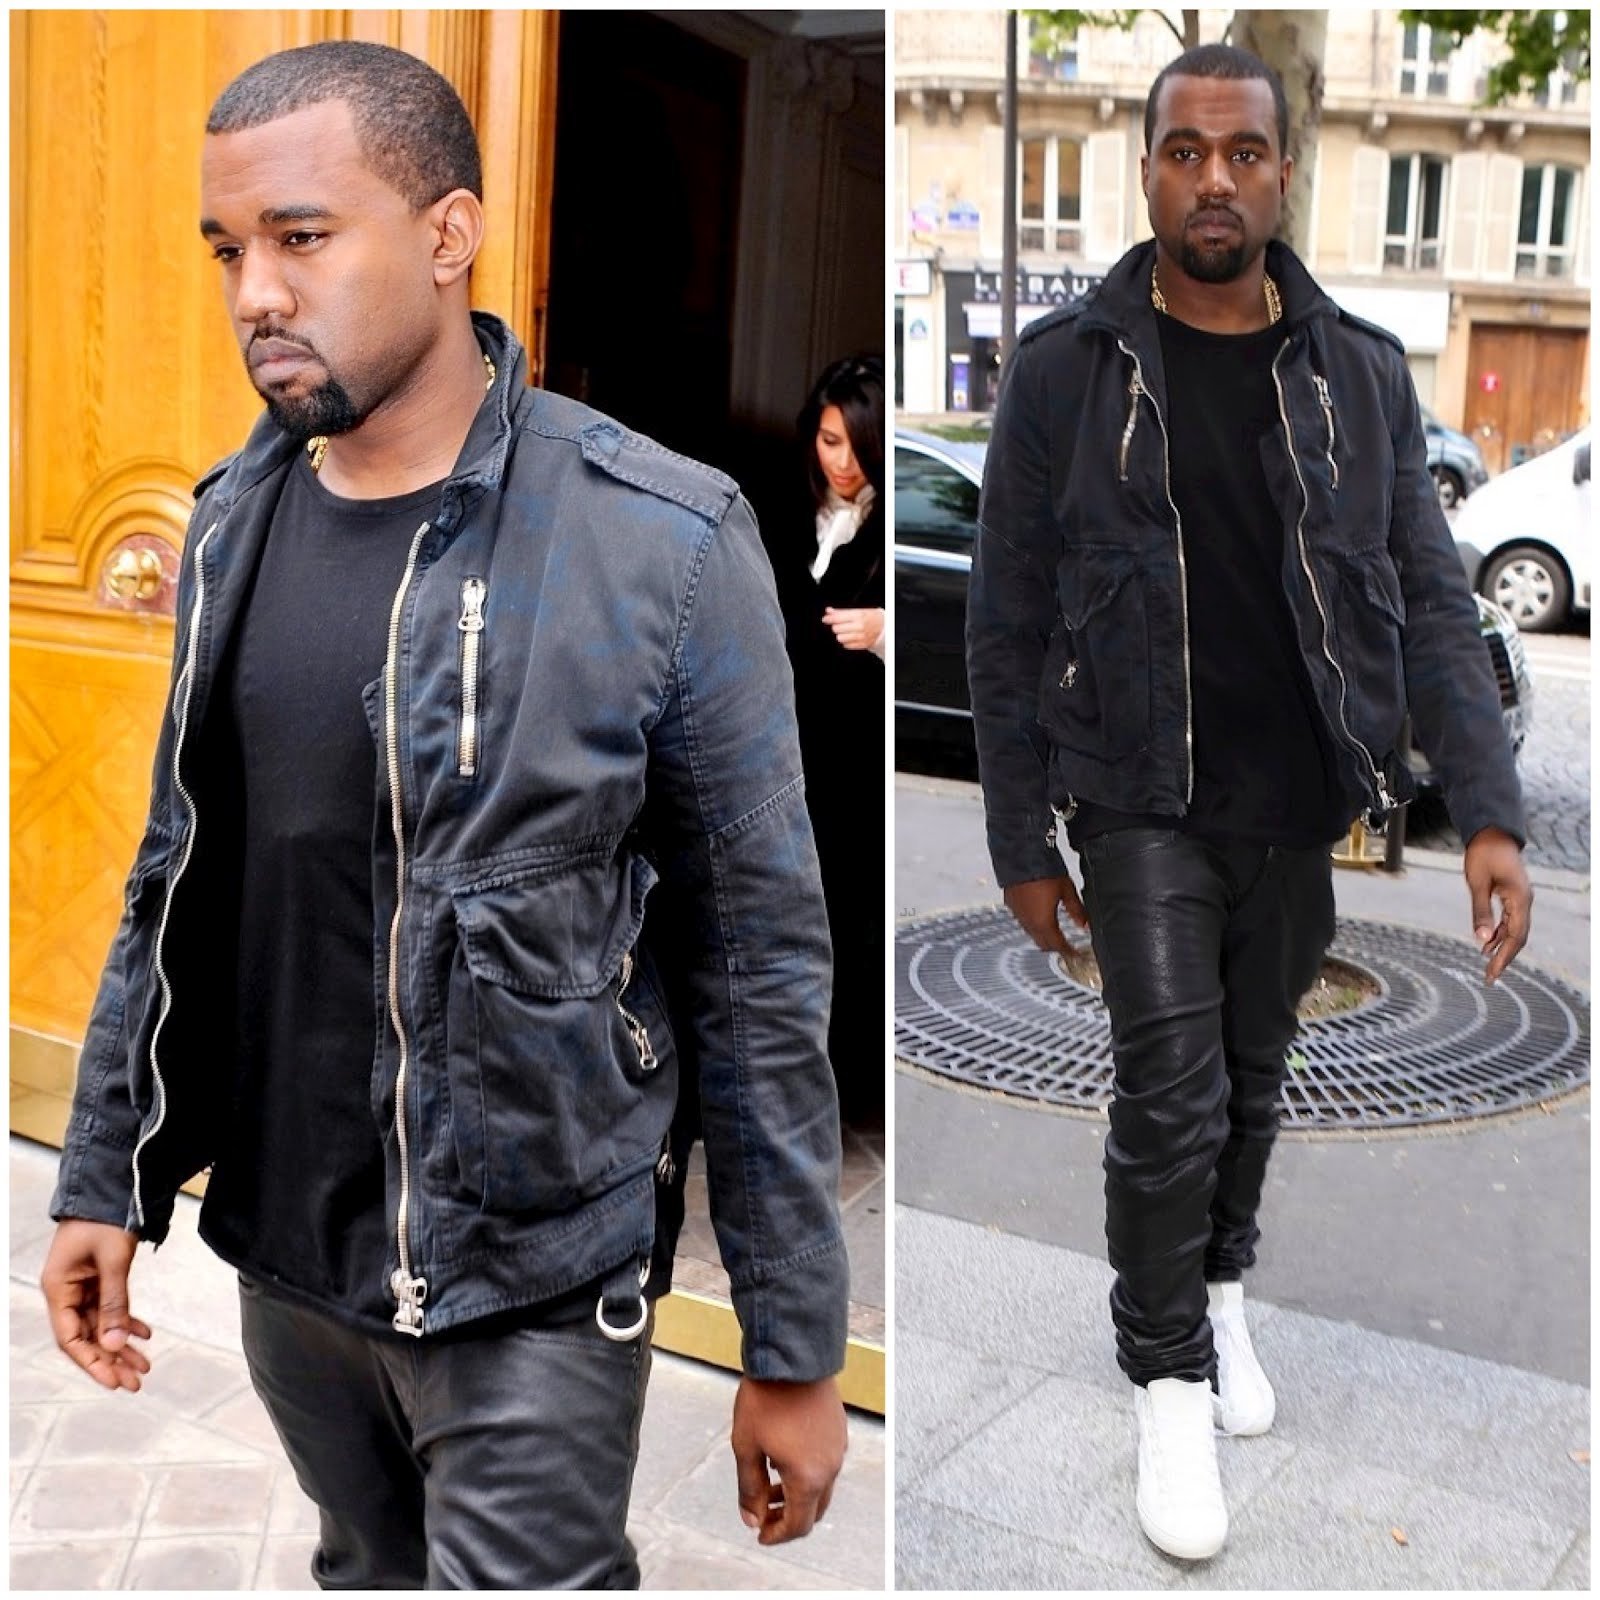 00o00 menswear london blog fashion style Kanye West Paris Balmain Homme Spring 2010 cotton jacket